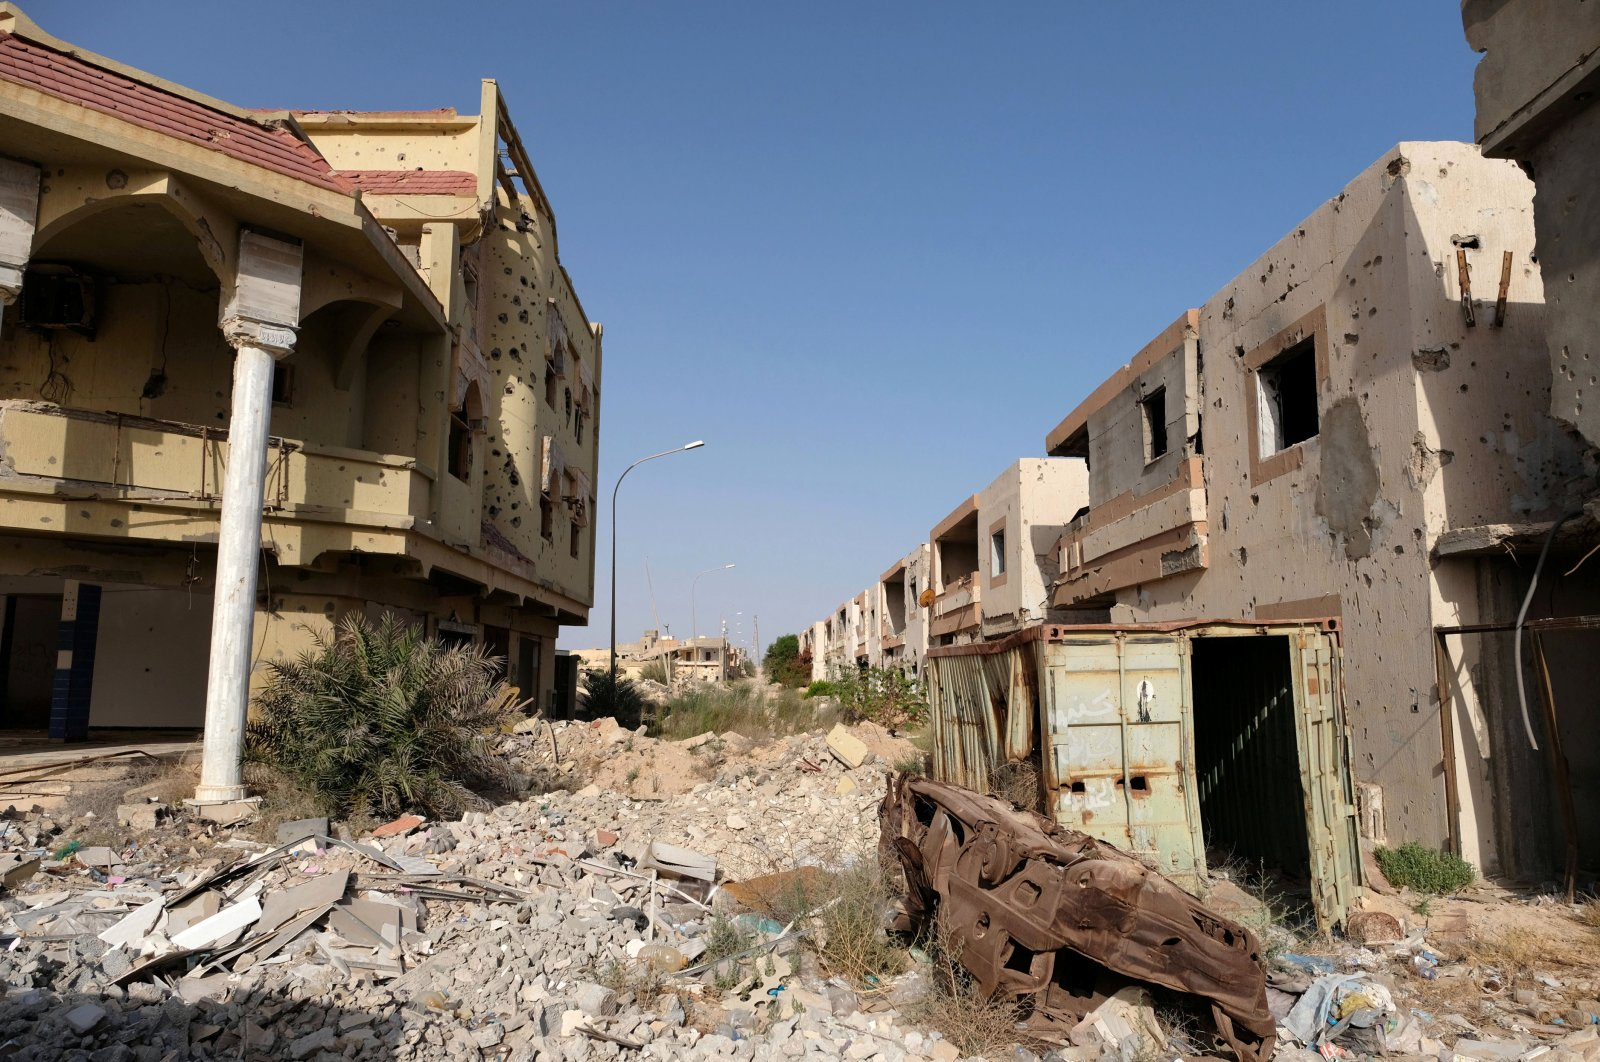 Buildings destroyed during past clashes are seen in Sirte, Libya, August 18, 2020. (REUTERS Photo)